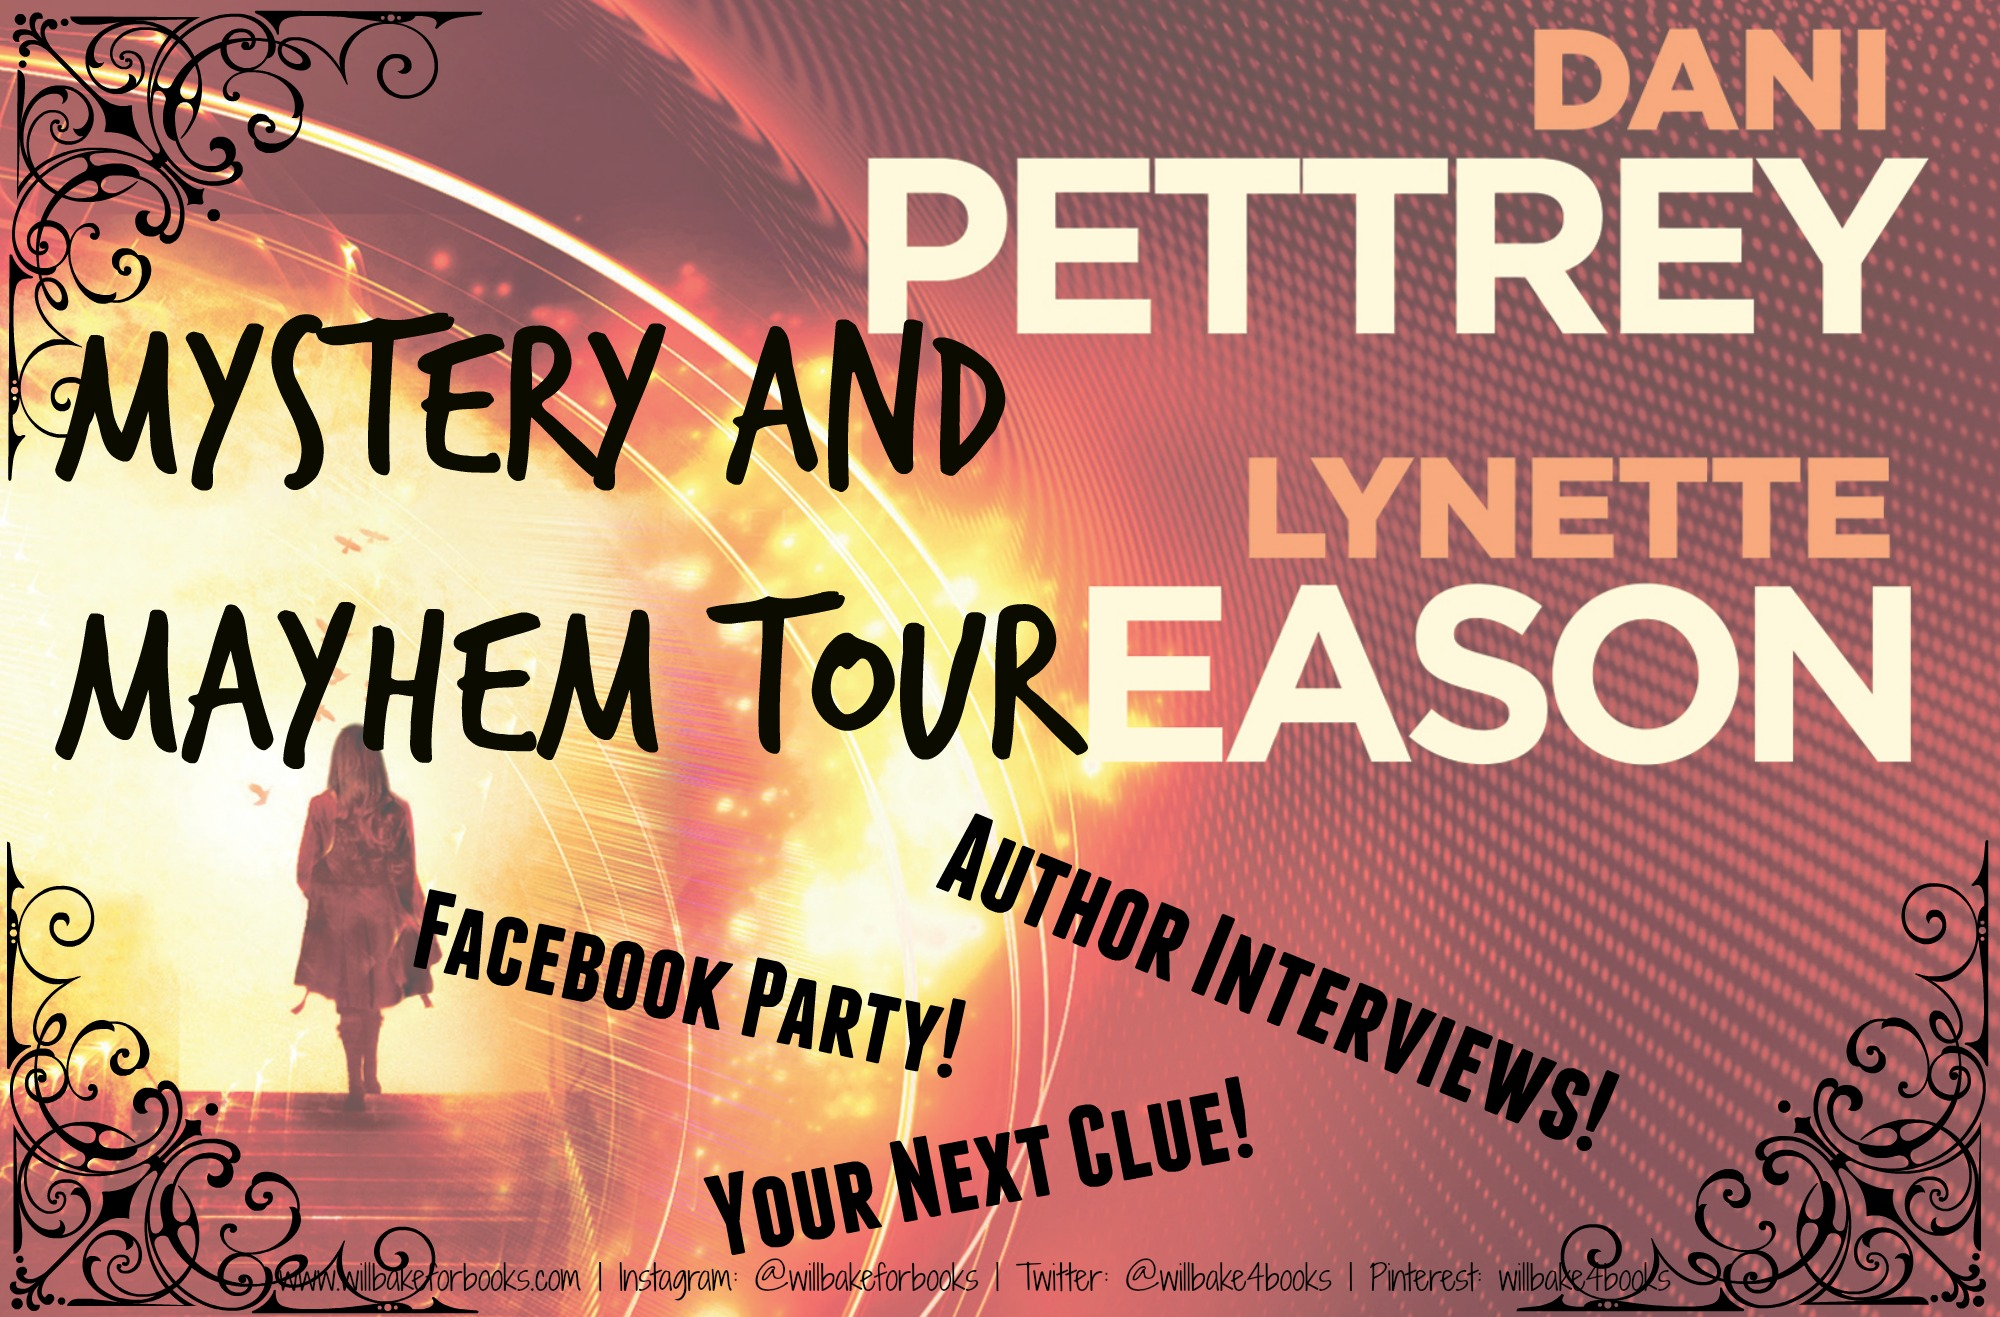 Mystery and Mayhem Tour: Author Interviews with Dani Pettrey and Lynette Eason!